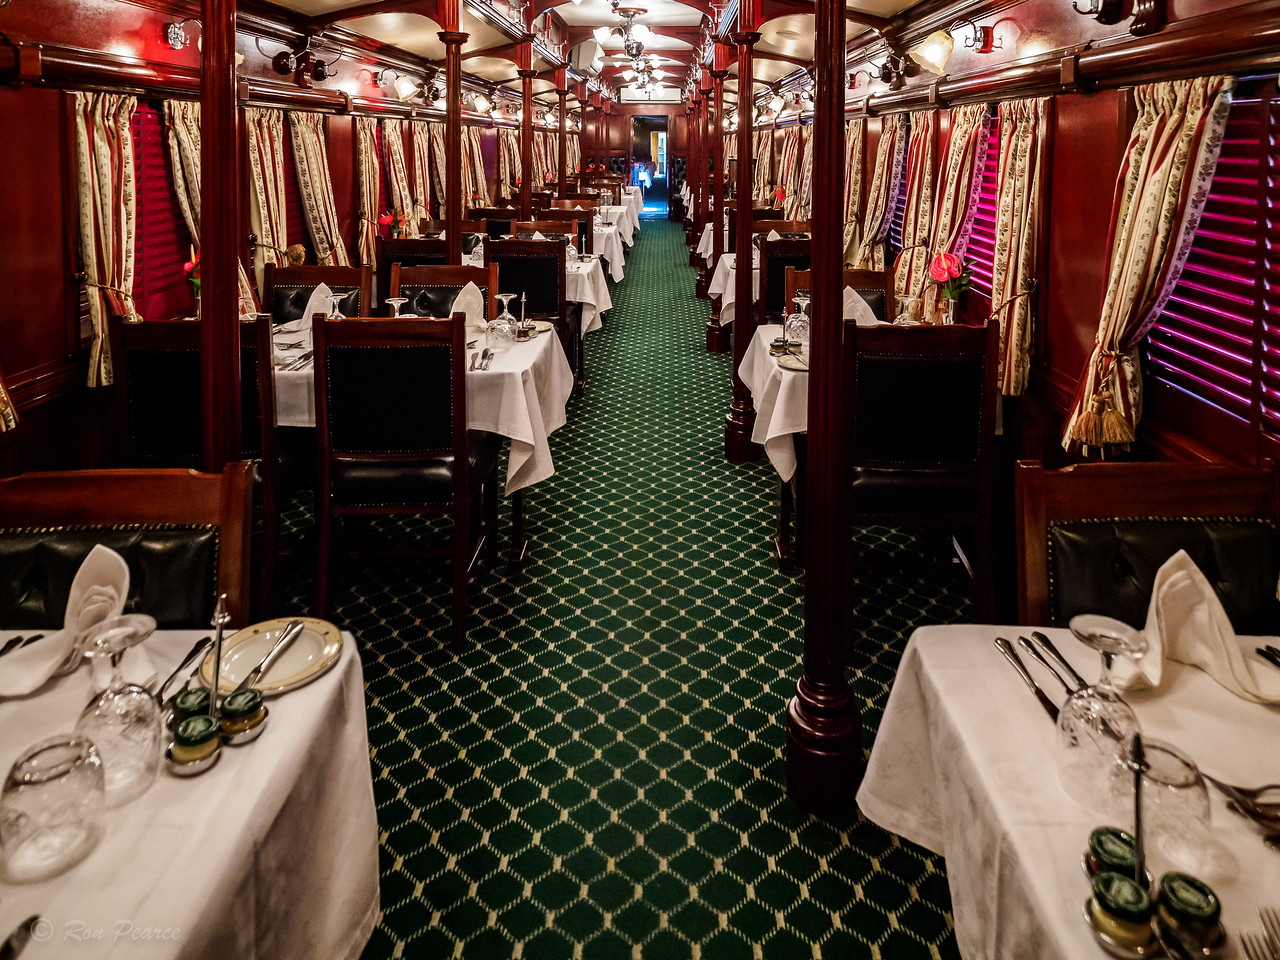 This is one of two dinning cars.  A formal, 5 course dinner (coat & tie) was served every evening.